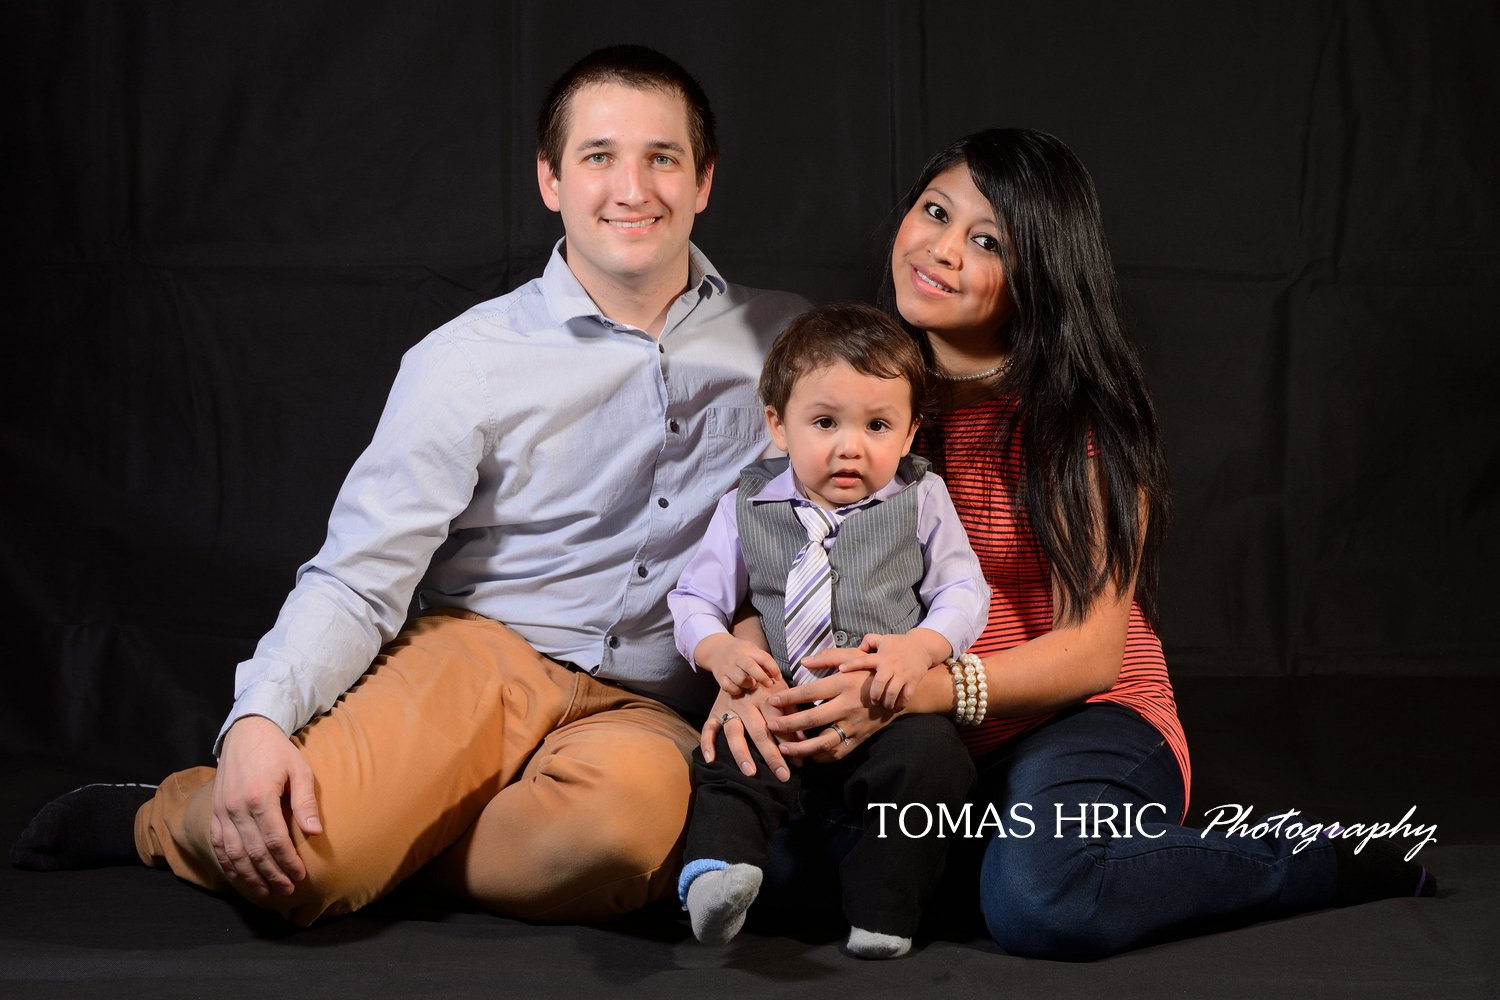 Family portrait with 1 year old baby boy northern virginia fairfax county photographer tomas hric photography